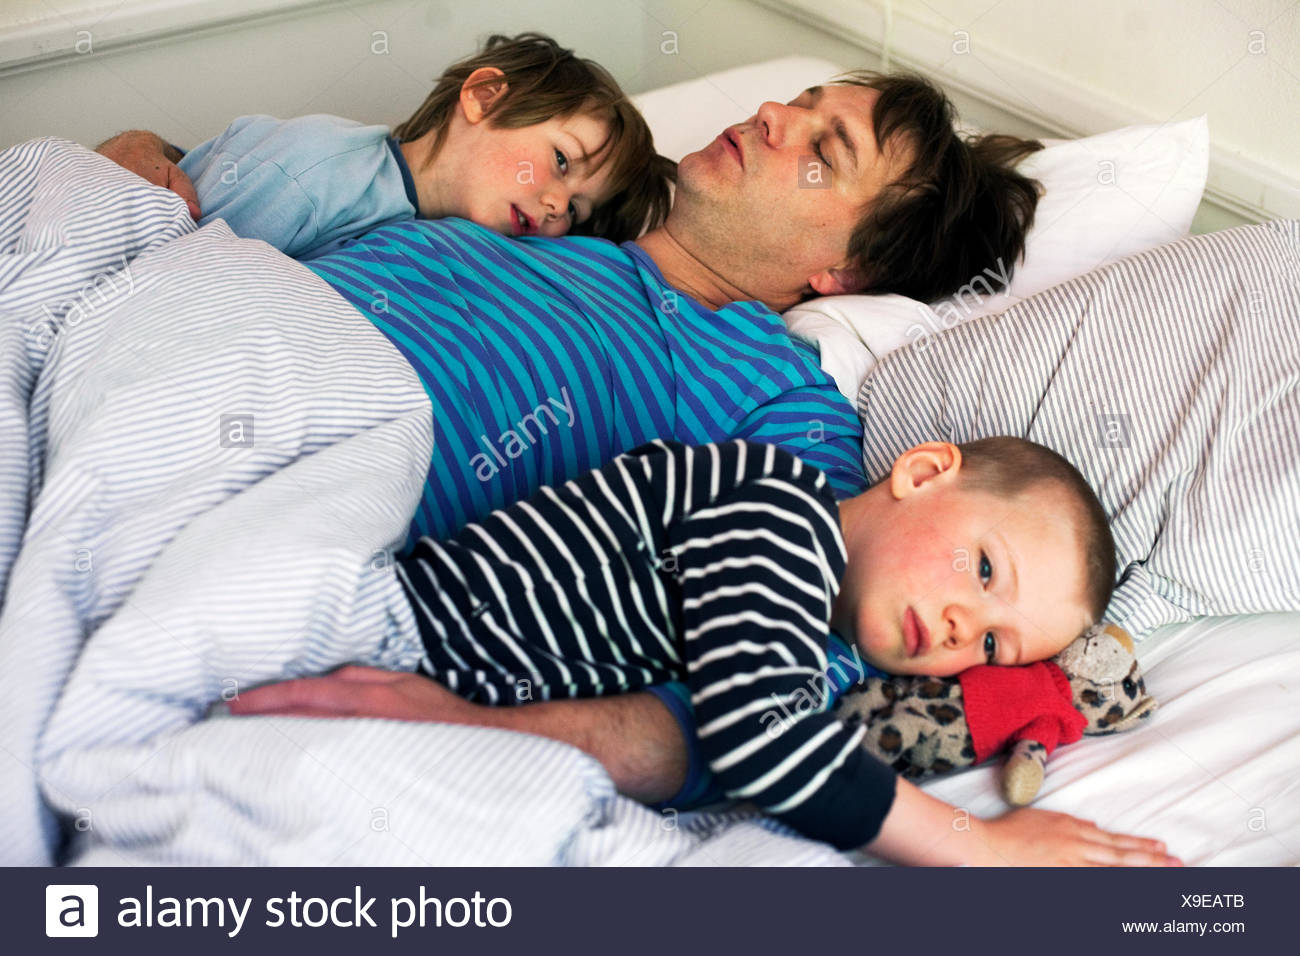 family of three people sleeping in one bed stock photos family of